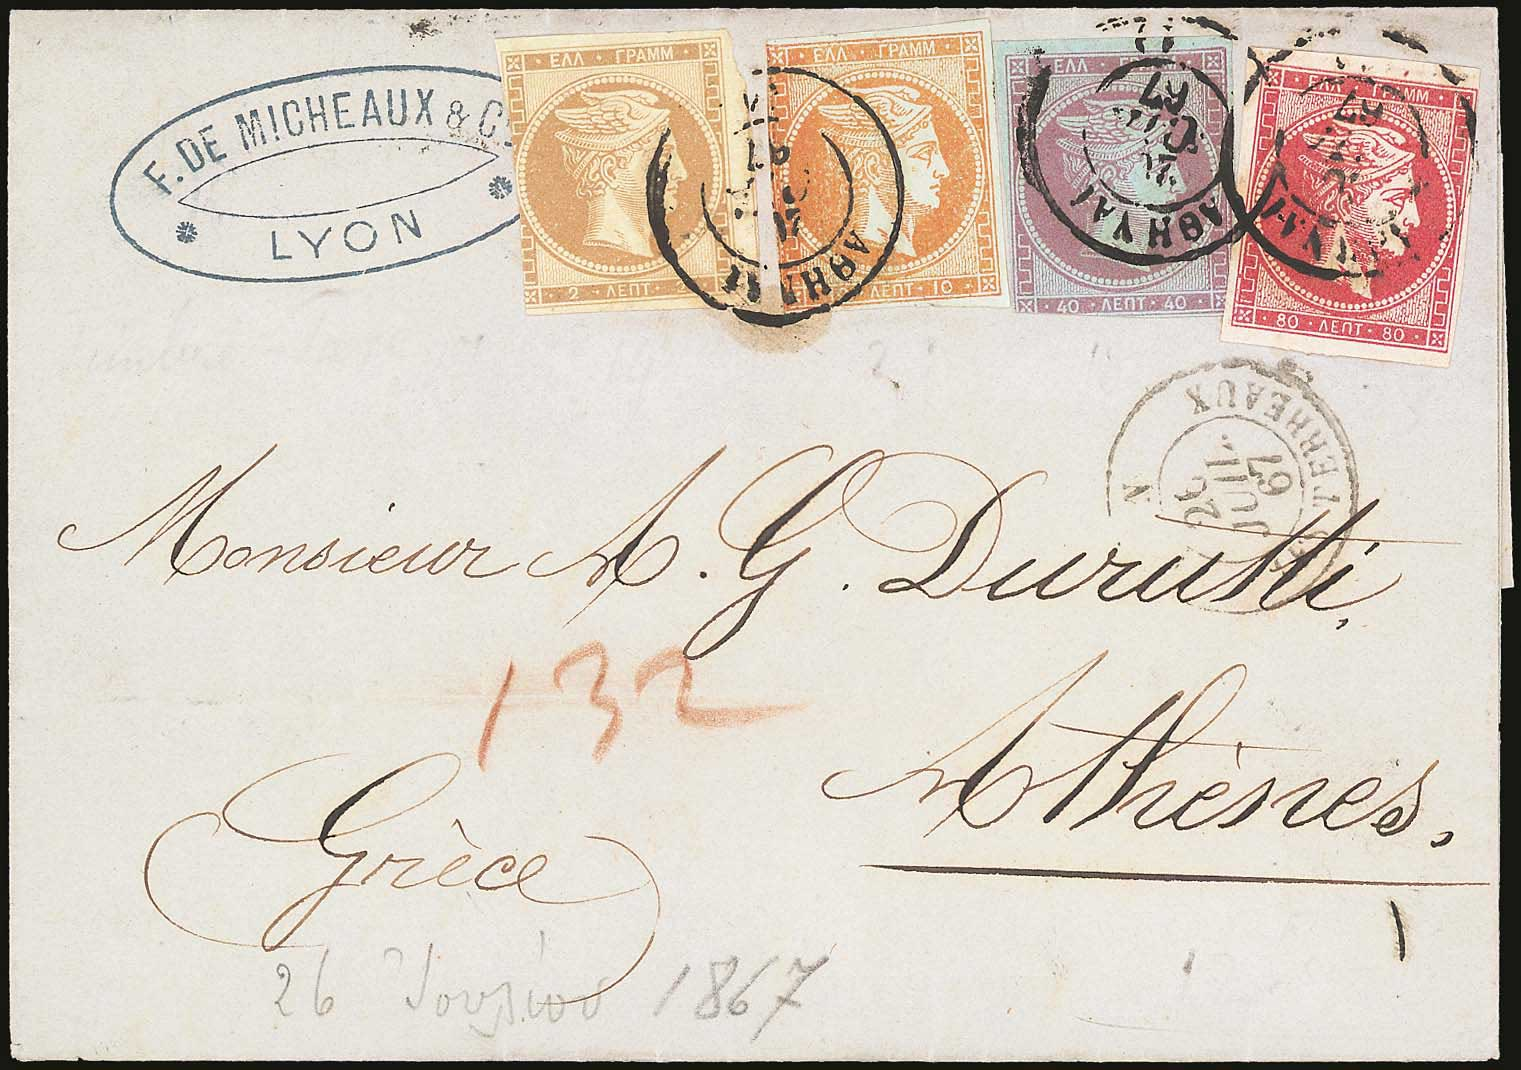 Lot 104 - -  LARGE HERMES HEAD 1862/67 consecutive athens printings -  A. Karamitsos Public Auction 648 General Stamp Sale